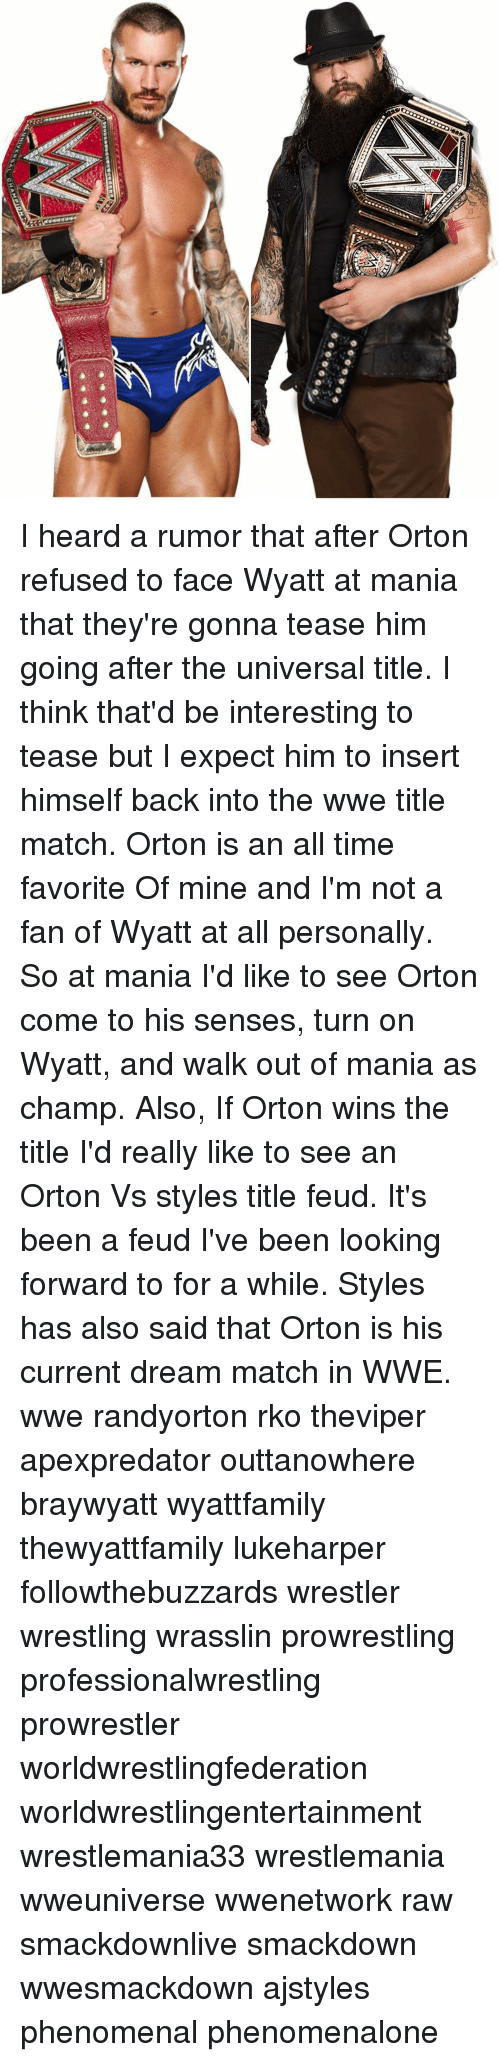 Memes, 🤖, and Mine: CHAMPION I heard a rumor that after Orton refused to face Wyatt at mania that they're gonna tease him going after the universal title. I think that'd be interesting to tease but I expect him to insert himself back into the wwe title match. Orton is an all time favorite Of mine and I'm not a fan of Wyatt at all personally. So at mania I'd like to see Orton come to his senses, turn on Wyatt, and walk out of mania as champ. Also, If Orton wins the title I'd really like to see an Orton Vs styles title feud. It's been a feud I've been looking forward to for a while. Styles has also said that Orton is his current dream match in WWE. wwe randyorton rko theviper apexpredator outtanowhere braywyatt wyattfamily thewyattfamily lukeharper followthebuzzards wrestler wrestling wrasslin prowrestling professionalwrestling prowrestler worldwrestlingfederation worldwrestlingentertainment wrestlemania33 wrestlemania wweuniverse wwenetwork raw smackdownlive smackdown wwesmackdown ajstyles phenomenal phenomenalone